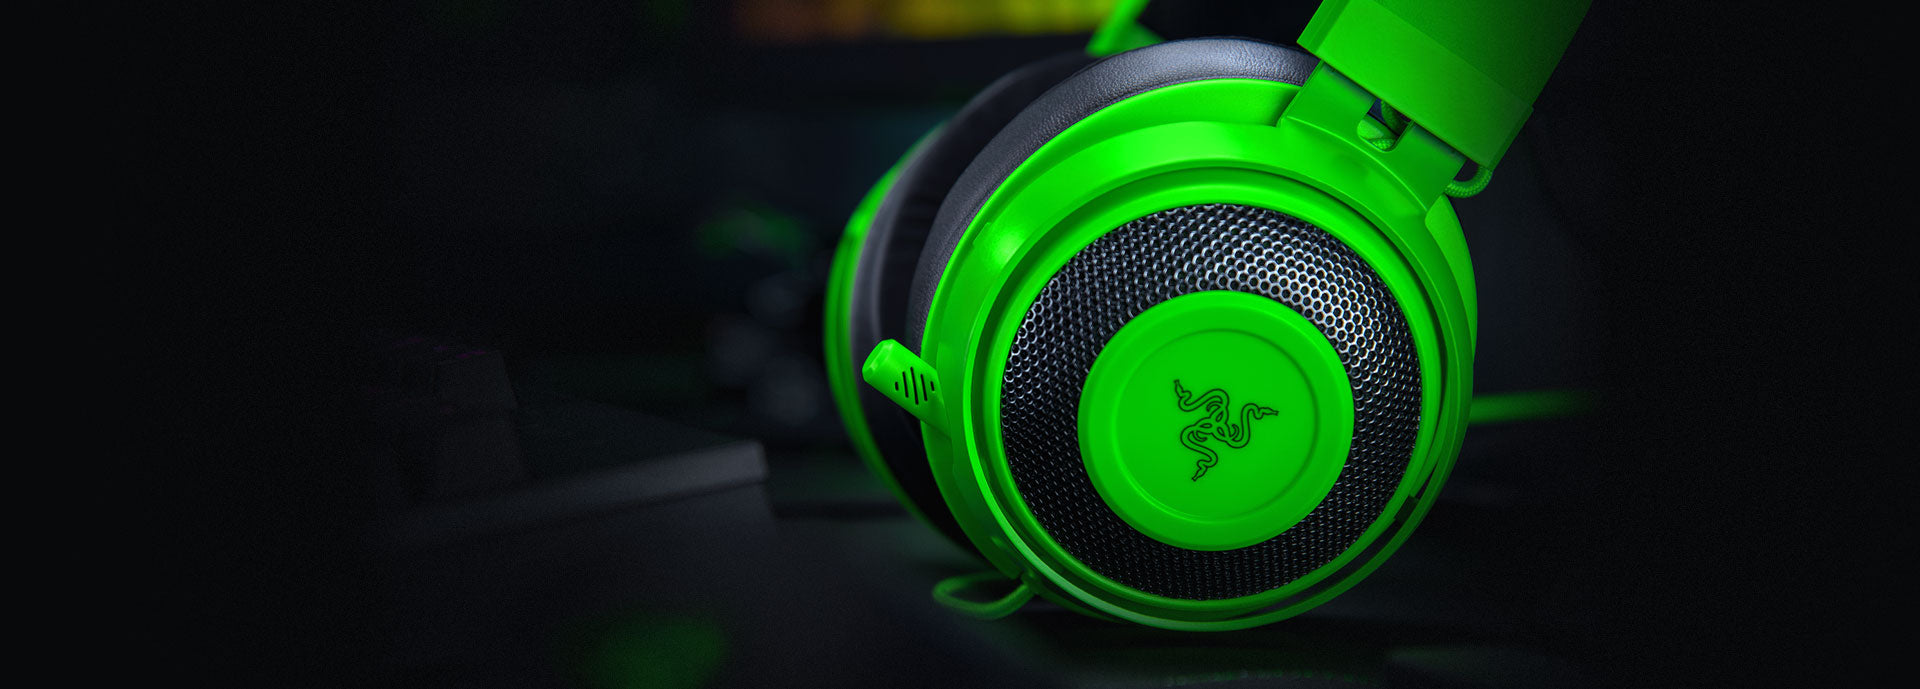 IMPROVED CARDIOID MICROPHONE - The Razer Kraken's microphone utilizes a cardioid pickup pattern so that your voice is captured with clarity without any unnecessary background noise. It rejects noise from beside and behind the mic, so your teammates will always hear you loud and clear.